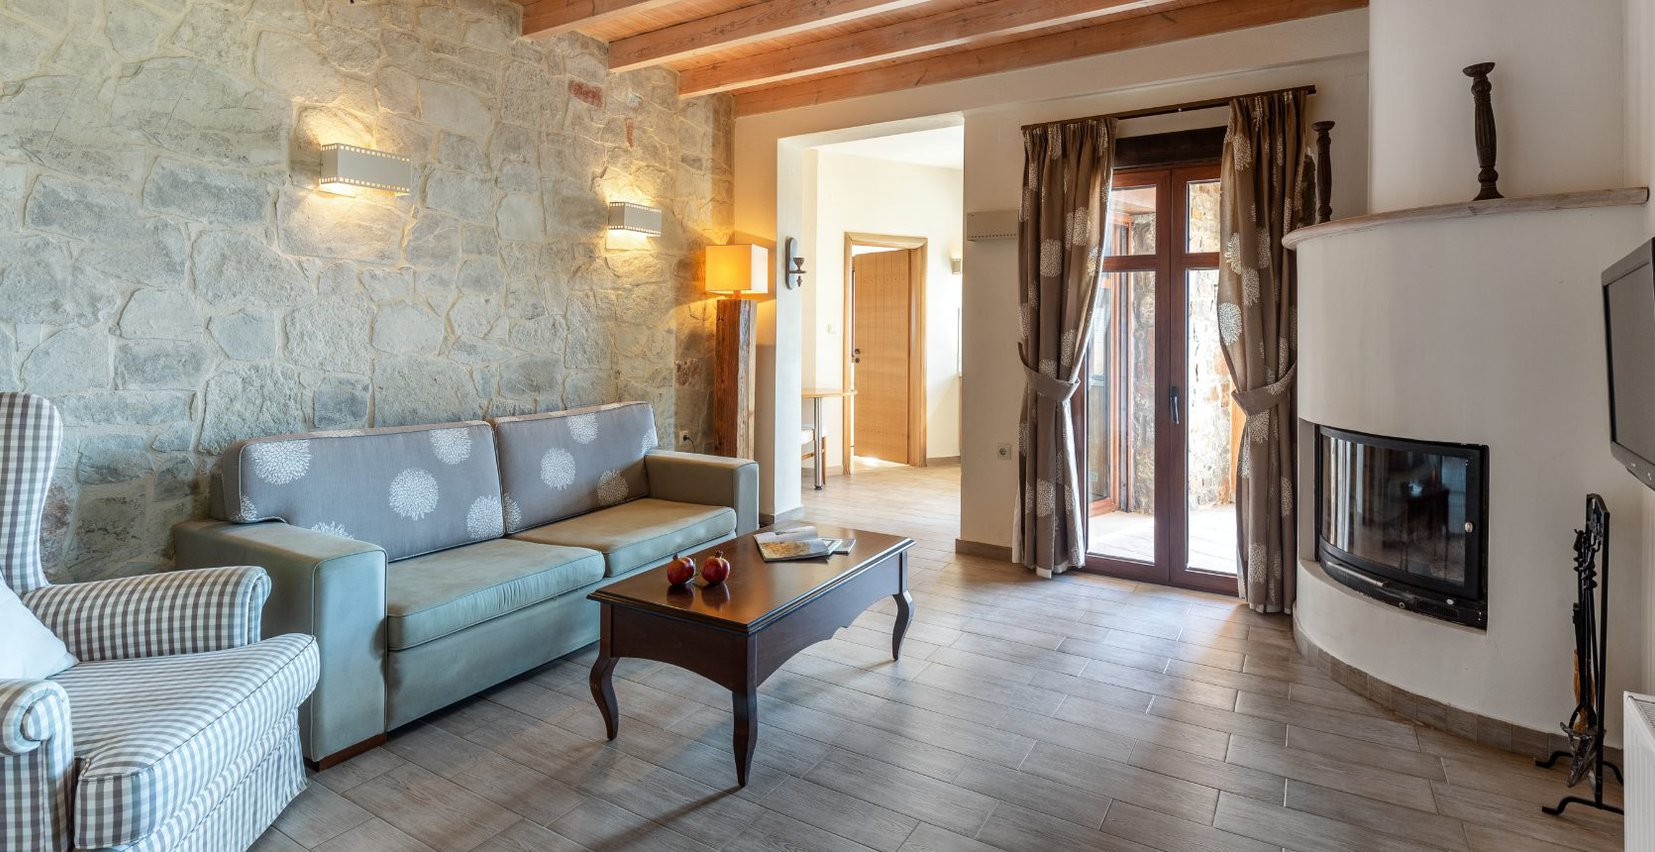 The interior of the maisonette with the stone walls, modern lights, balcony doors, the sofa, coffee table and fireplace